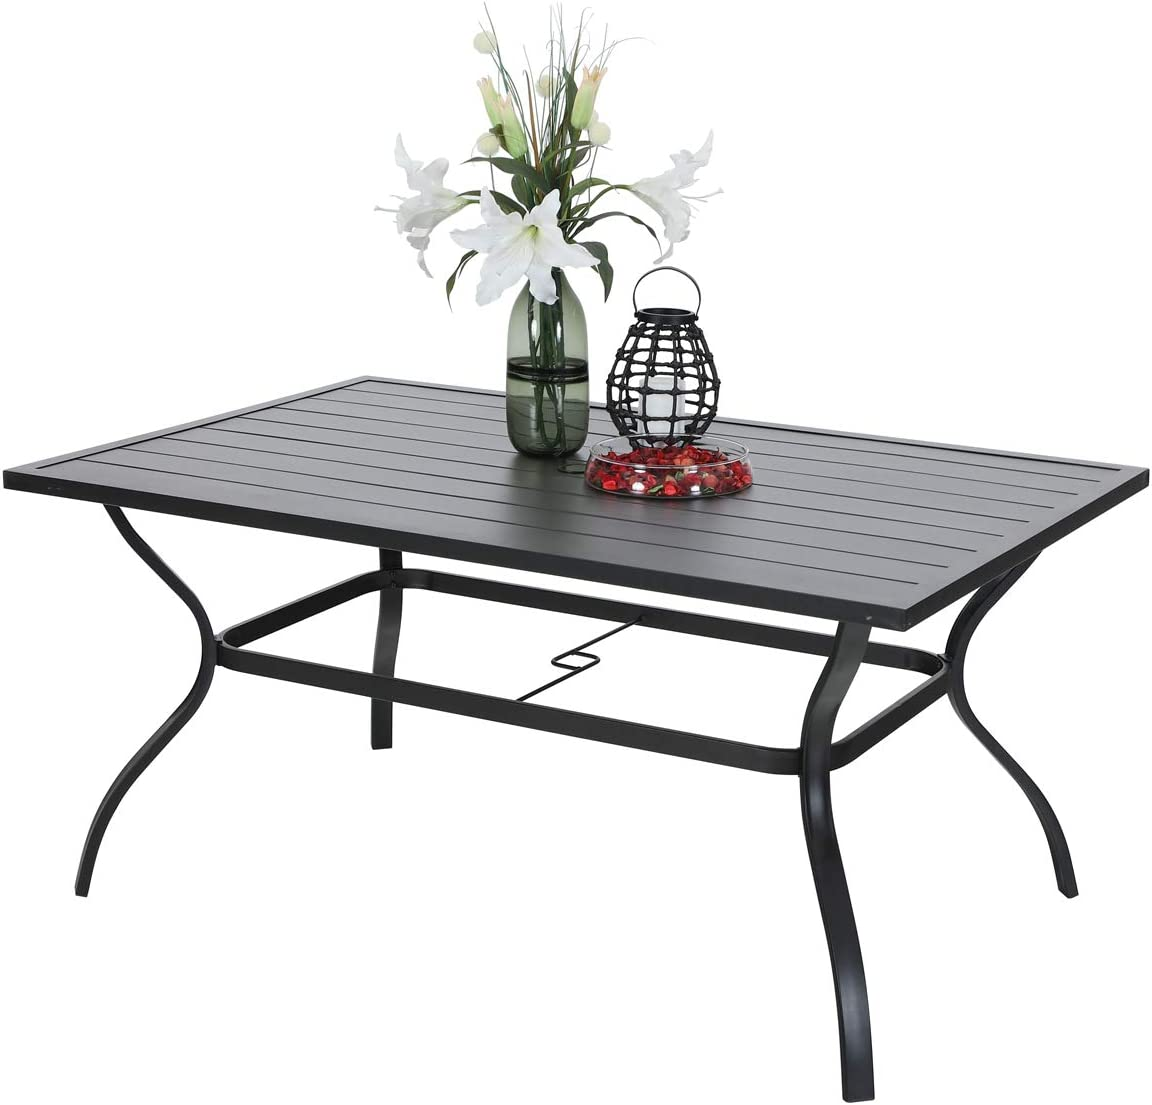 Amazon Com Phi Villa Outdoor Patio 60 X38 Rectangular Dining Table For 6 Person With Umbrella Hole Black Kitchen Dining